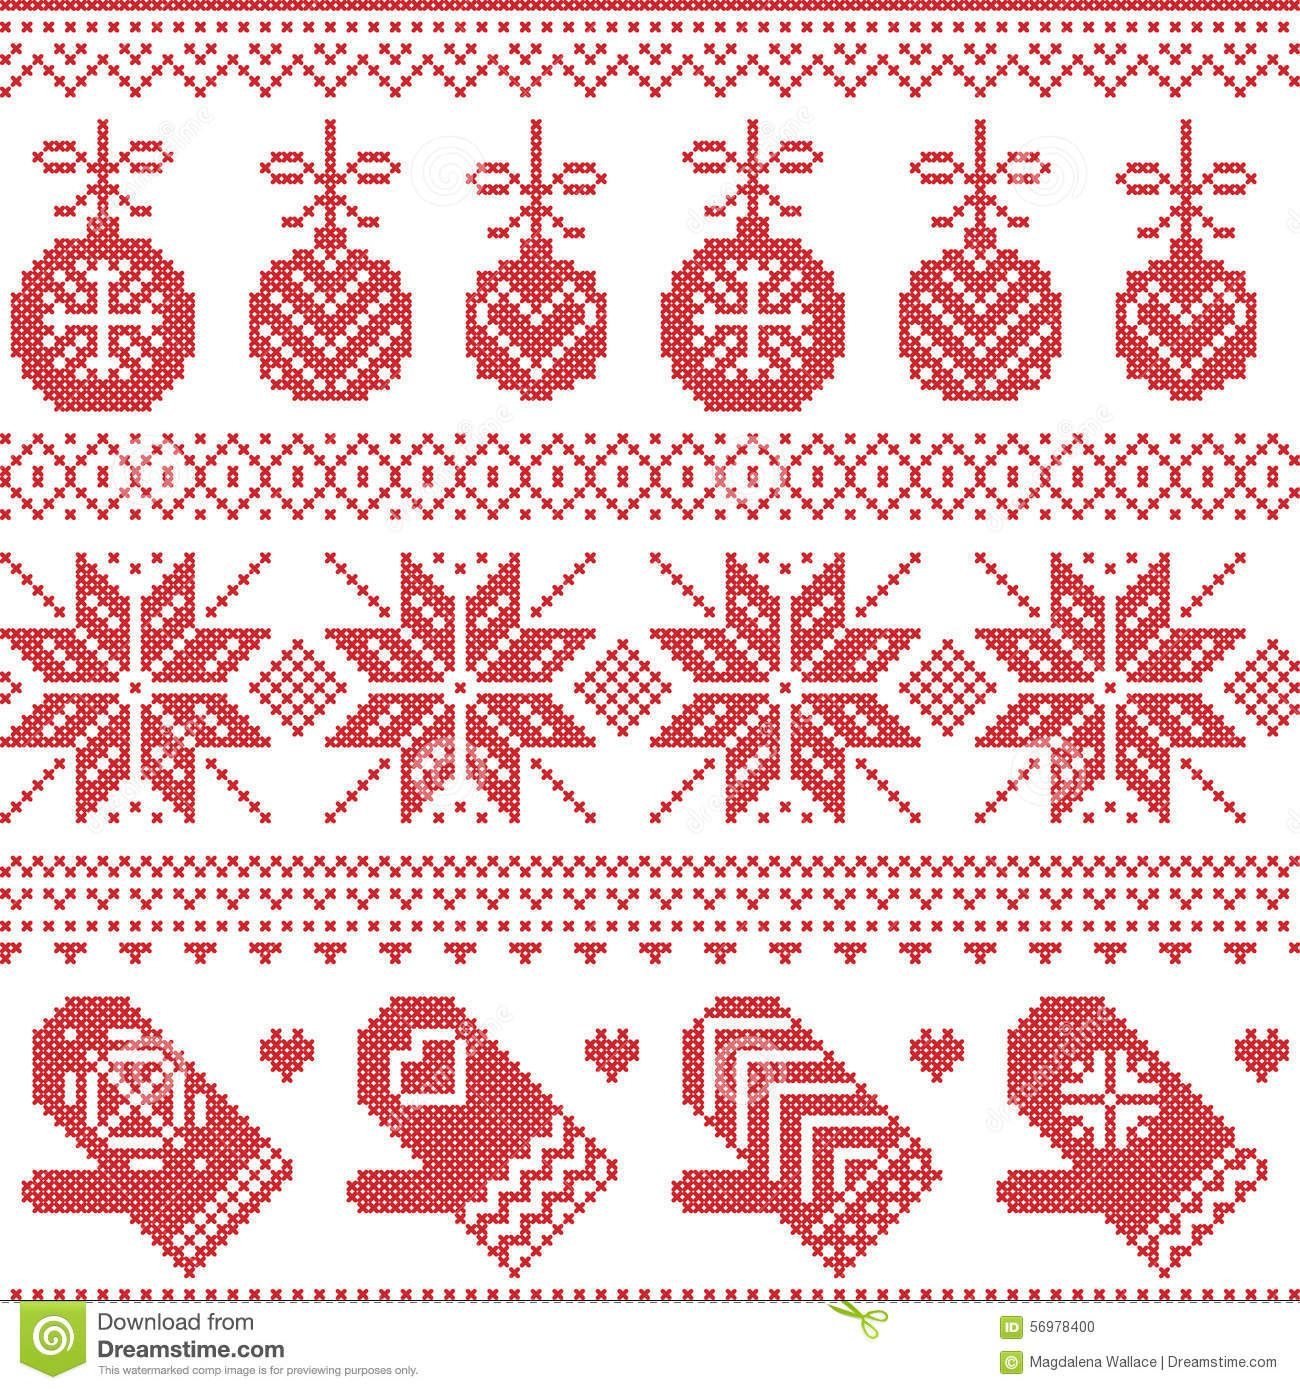 Scandinavian Nordic Seamless Christmas Pattern With Xmas Baubles Gloves Stars Snowflakes Scandinavian Cross Stitch Red Cross Stitch Christmas Cross Stitch